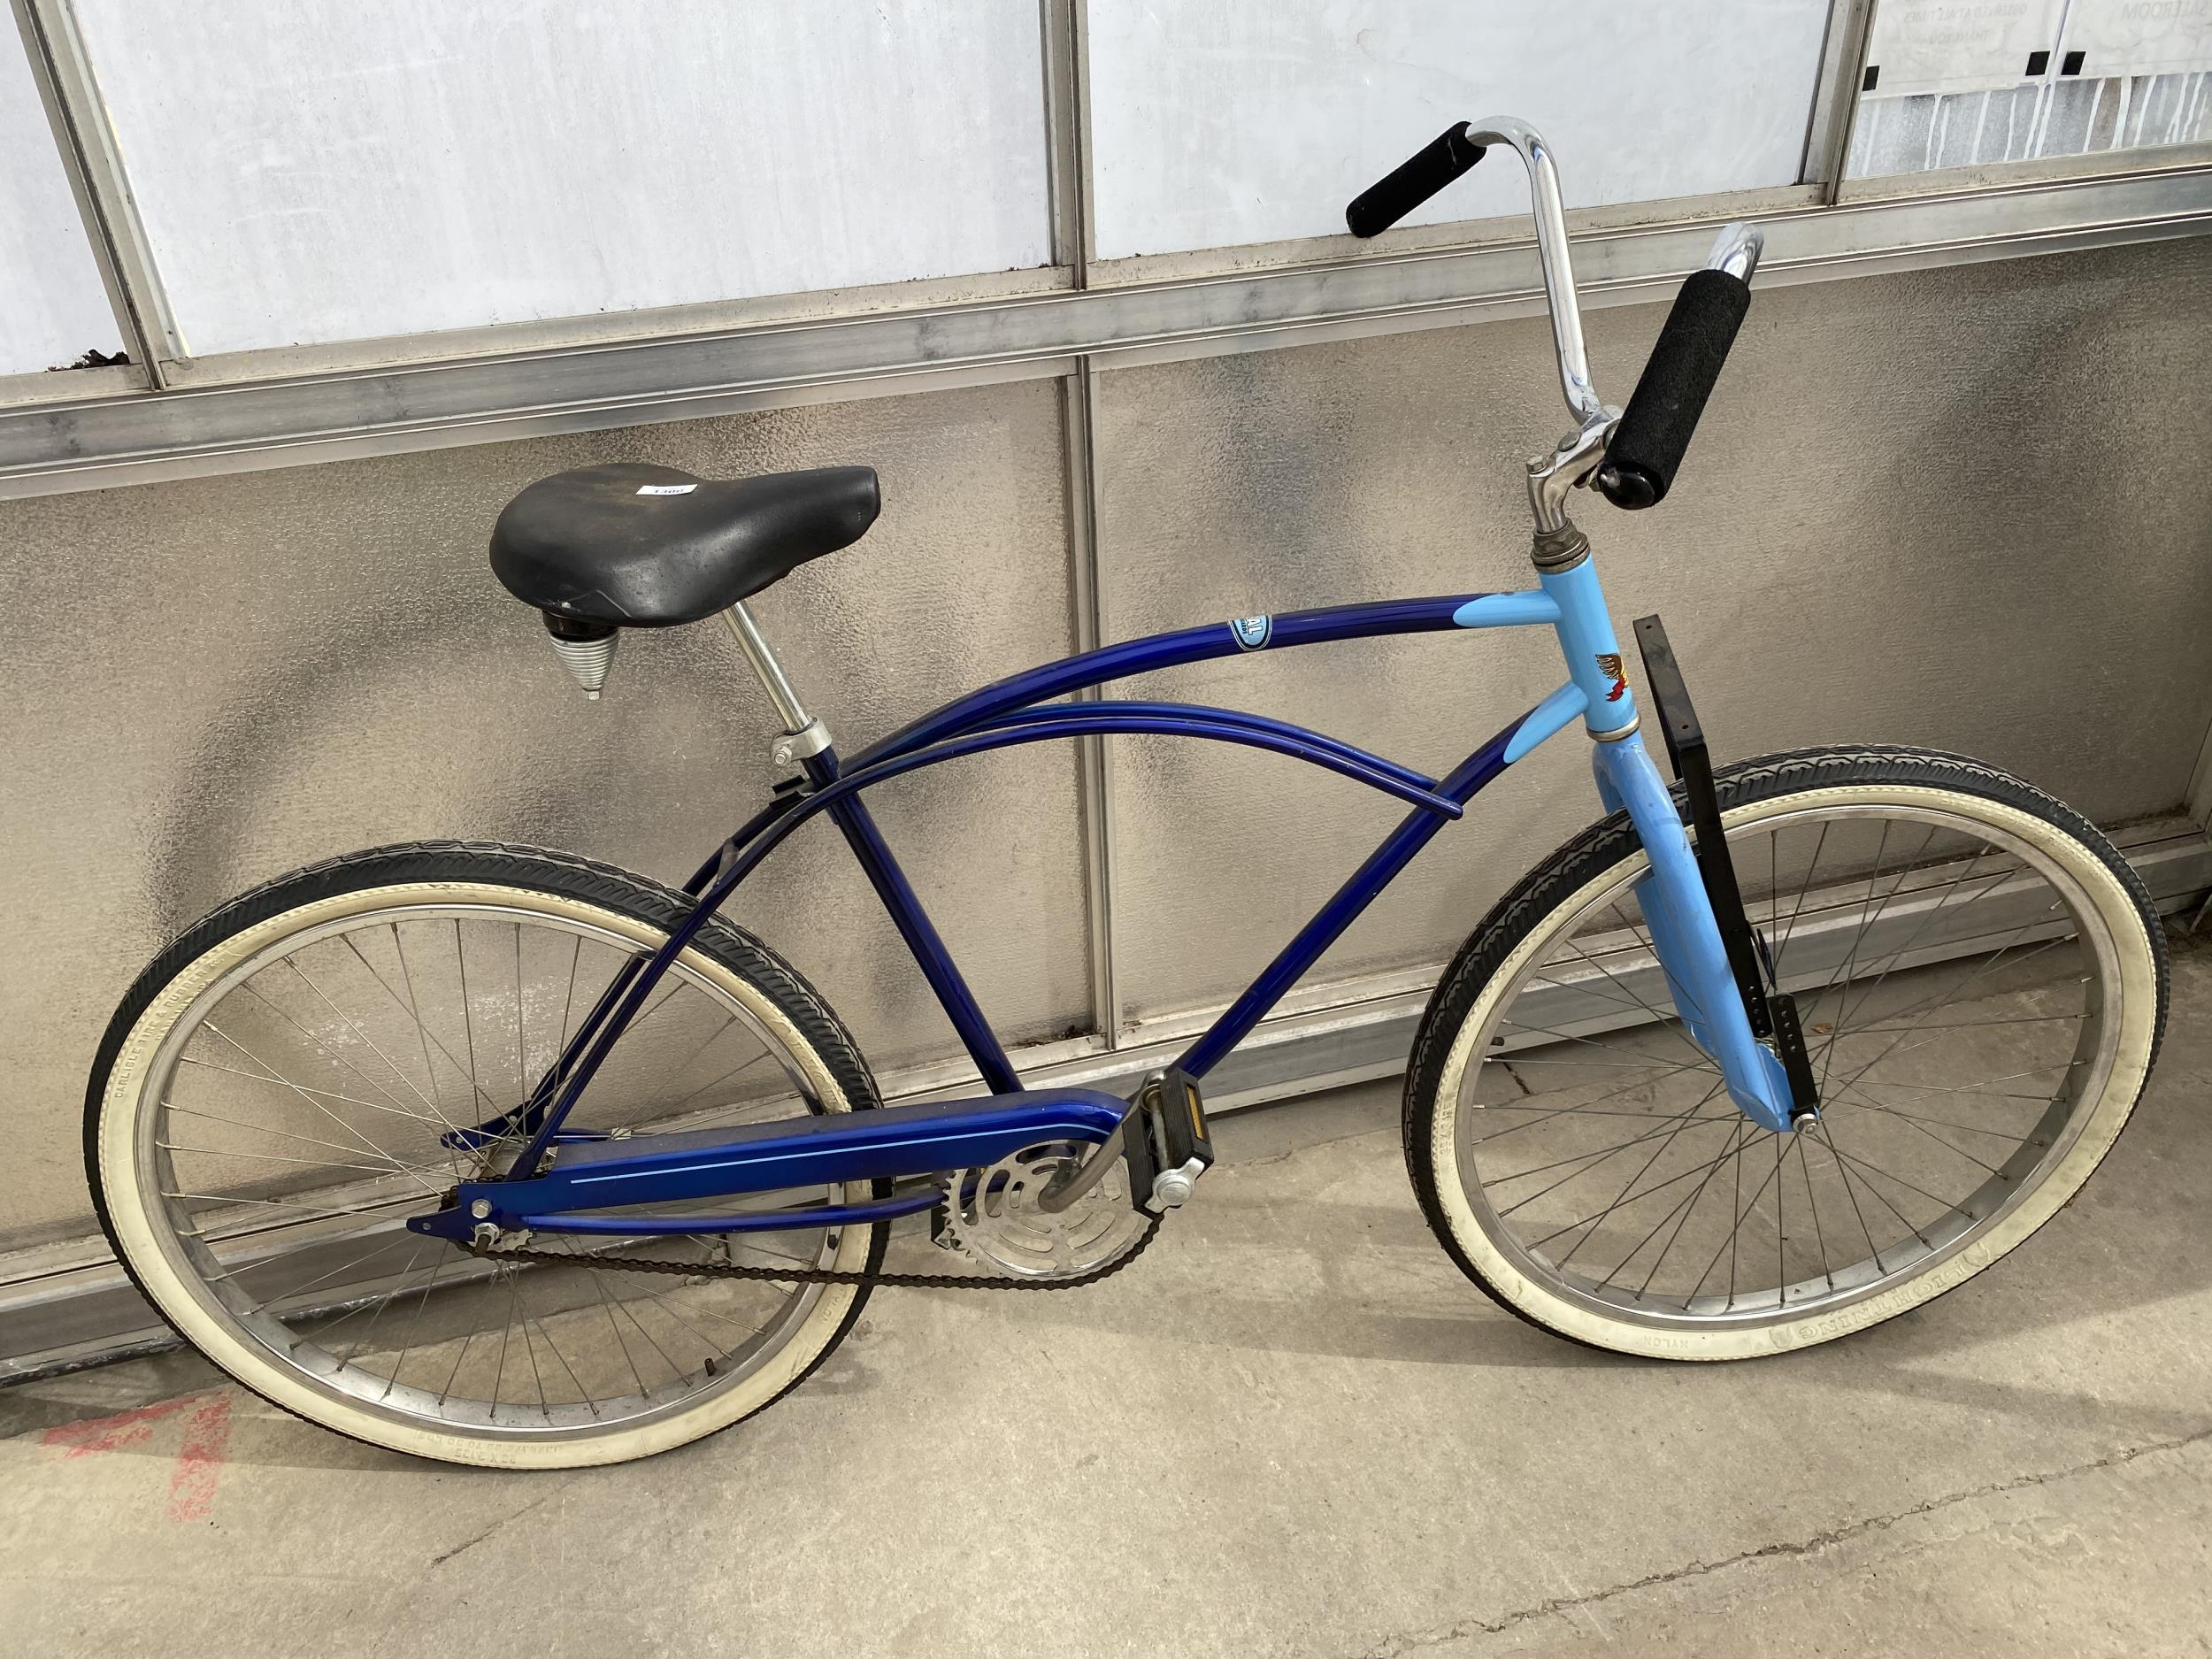 A VINTAGE MURRAY BICYCLE WITH THE SERIAL NUMBER M025022 39 - Image 3 of 5